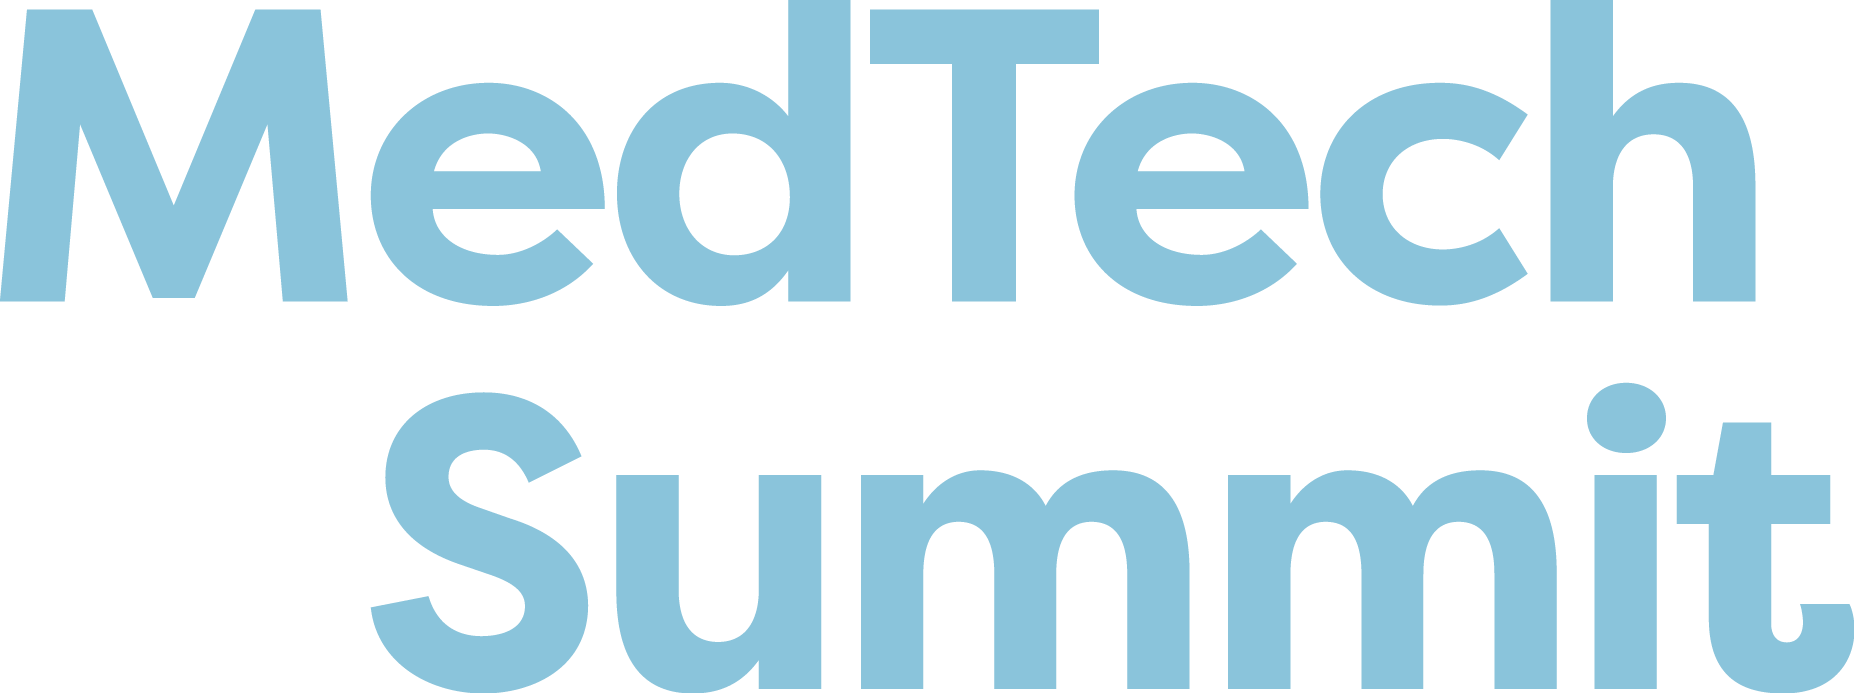 MedTech Summit – Medical Device Conference